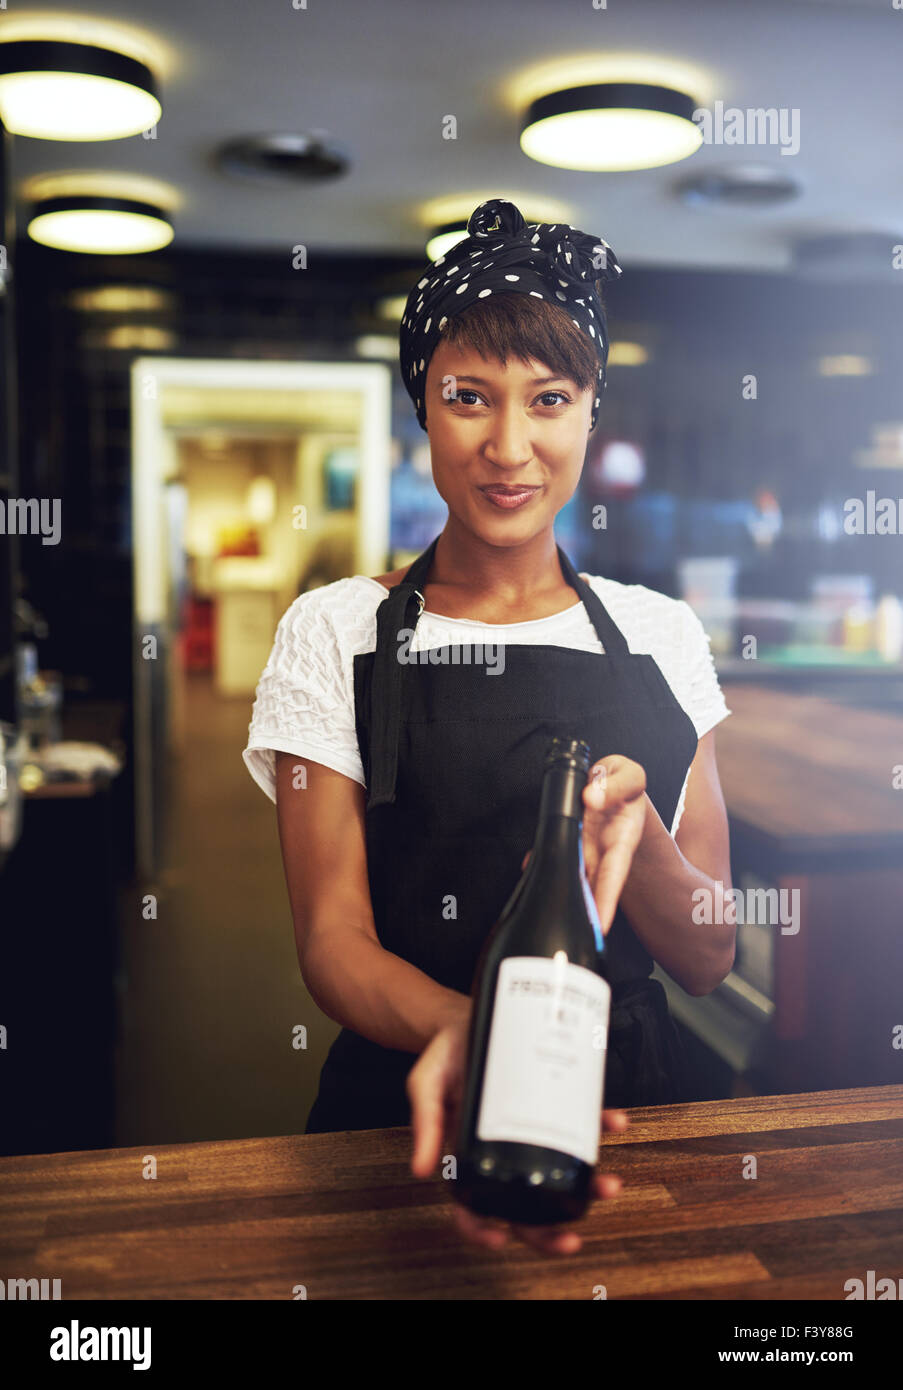 Smiling young waitress presenting a bottle of red wine to a customer for approval before opening it, conceptual - Stock Image